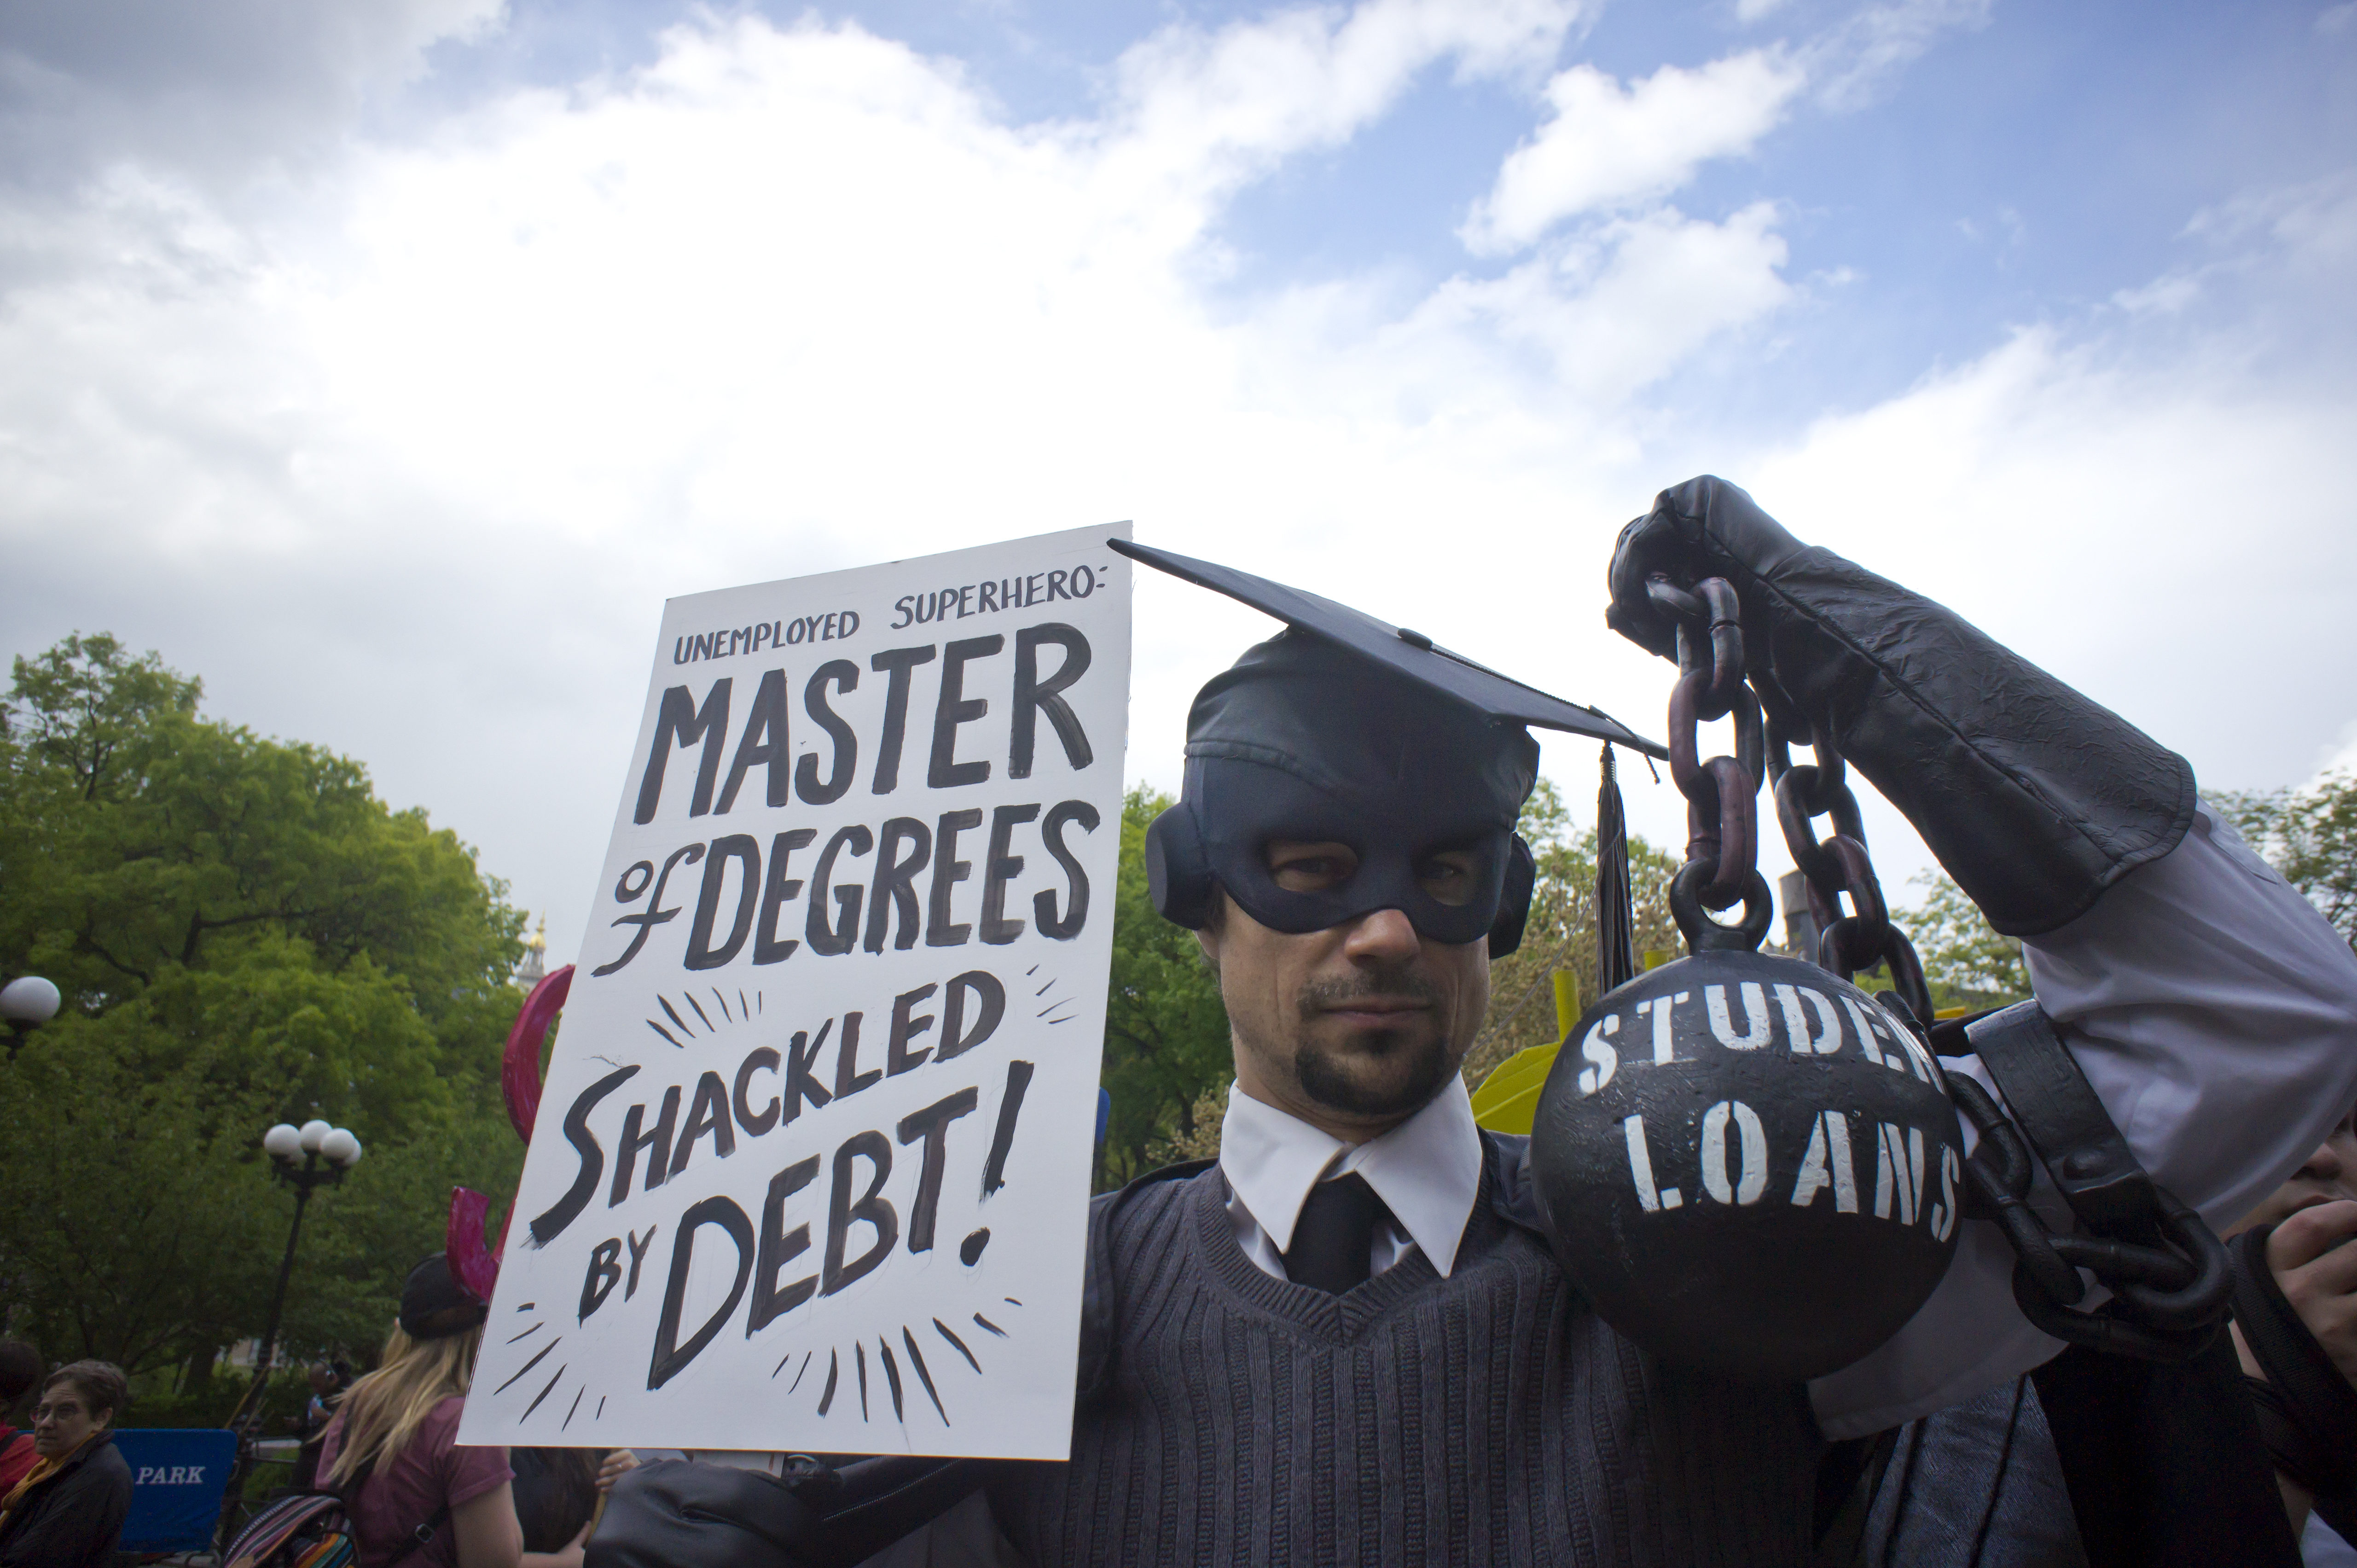 Gan Golan, in his 'Master of Degrees costume, joins Occupy Wall Street protesters, students and supporters at a rally in Union Square Park in New York on Wednesday, April 25, 2012.